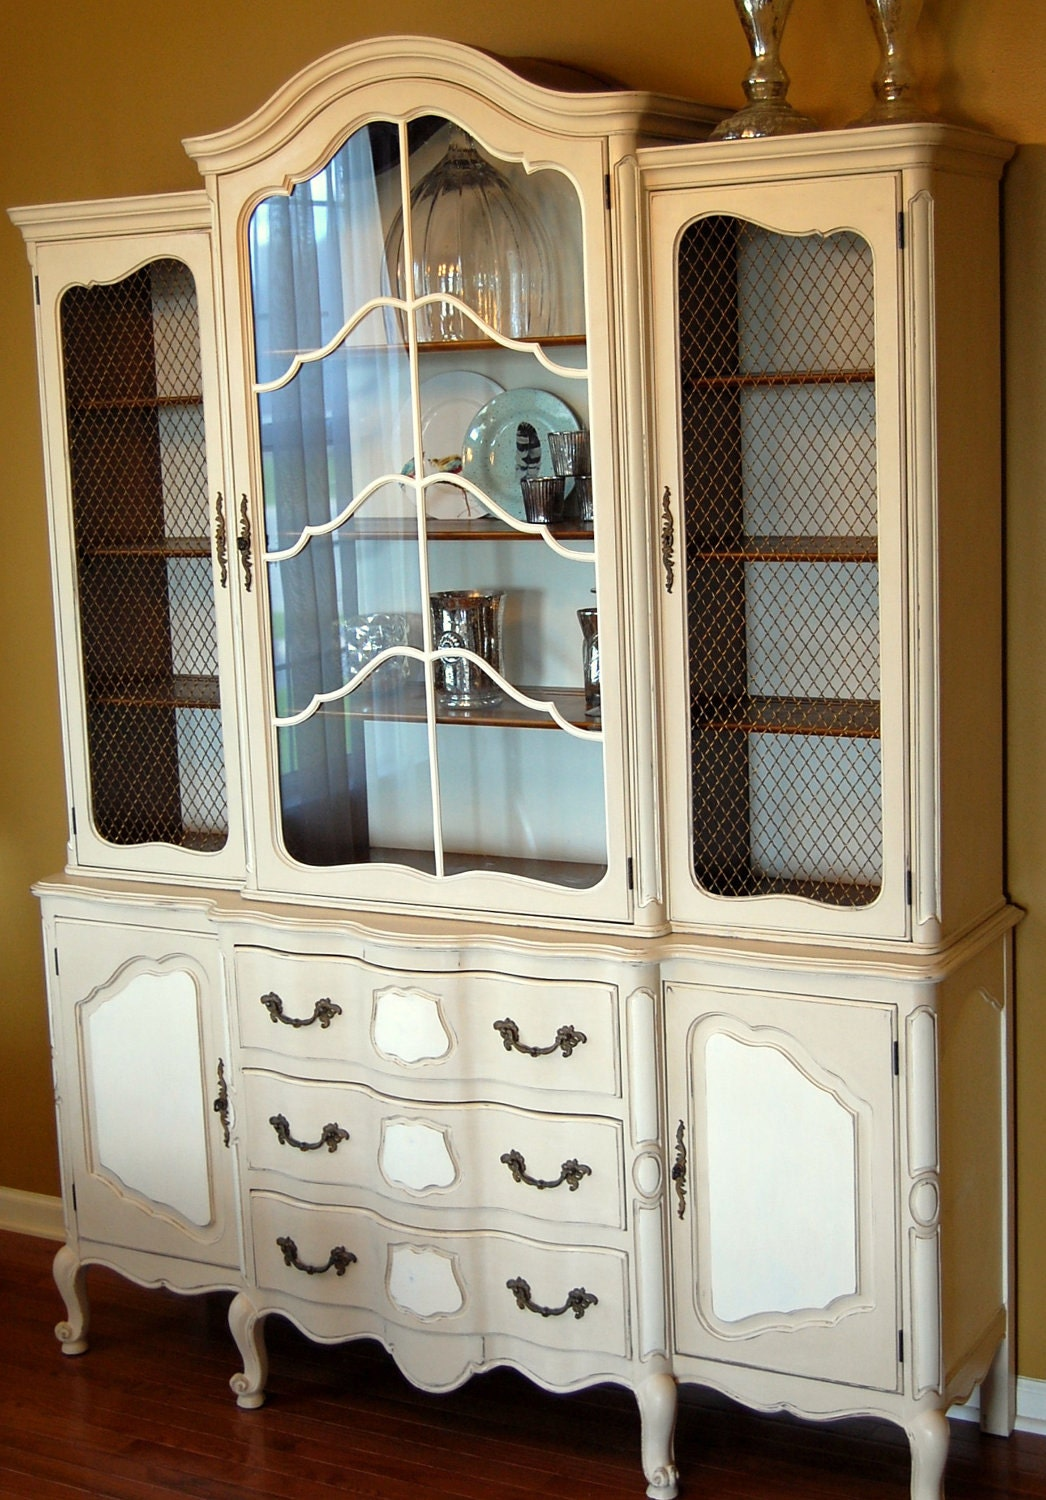 Annie Sloan Chalk Painted Hutch : ilfullxfull329263191 from www.etsy.com size 1046 x 1500 jpeg 362kB